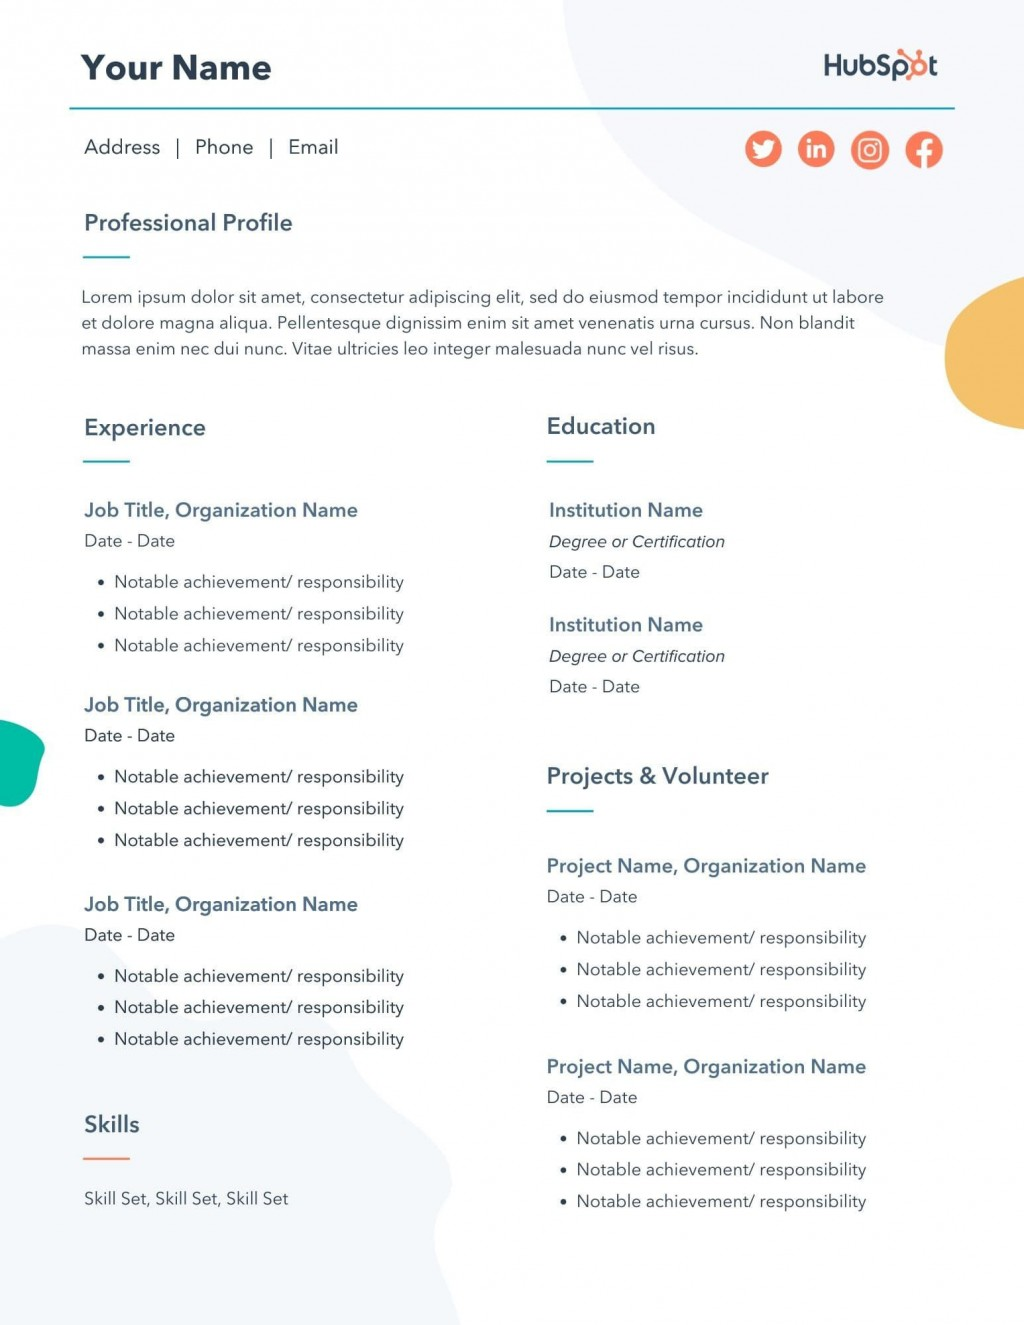 004 Top Resume Template For First Job Image  Free TeenagerLarge